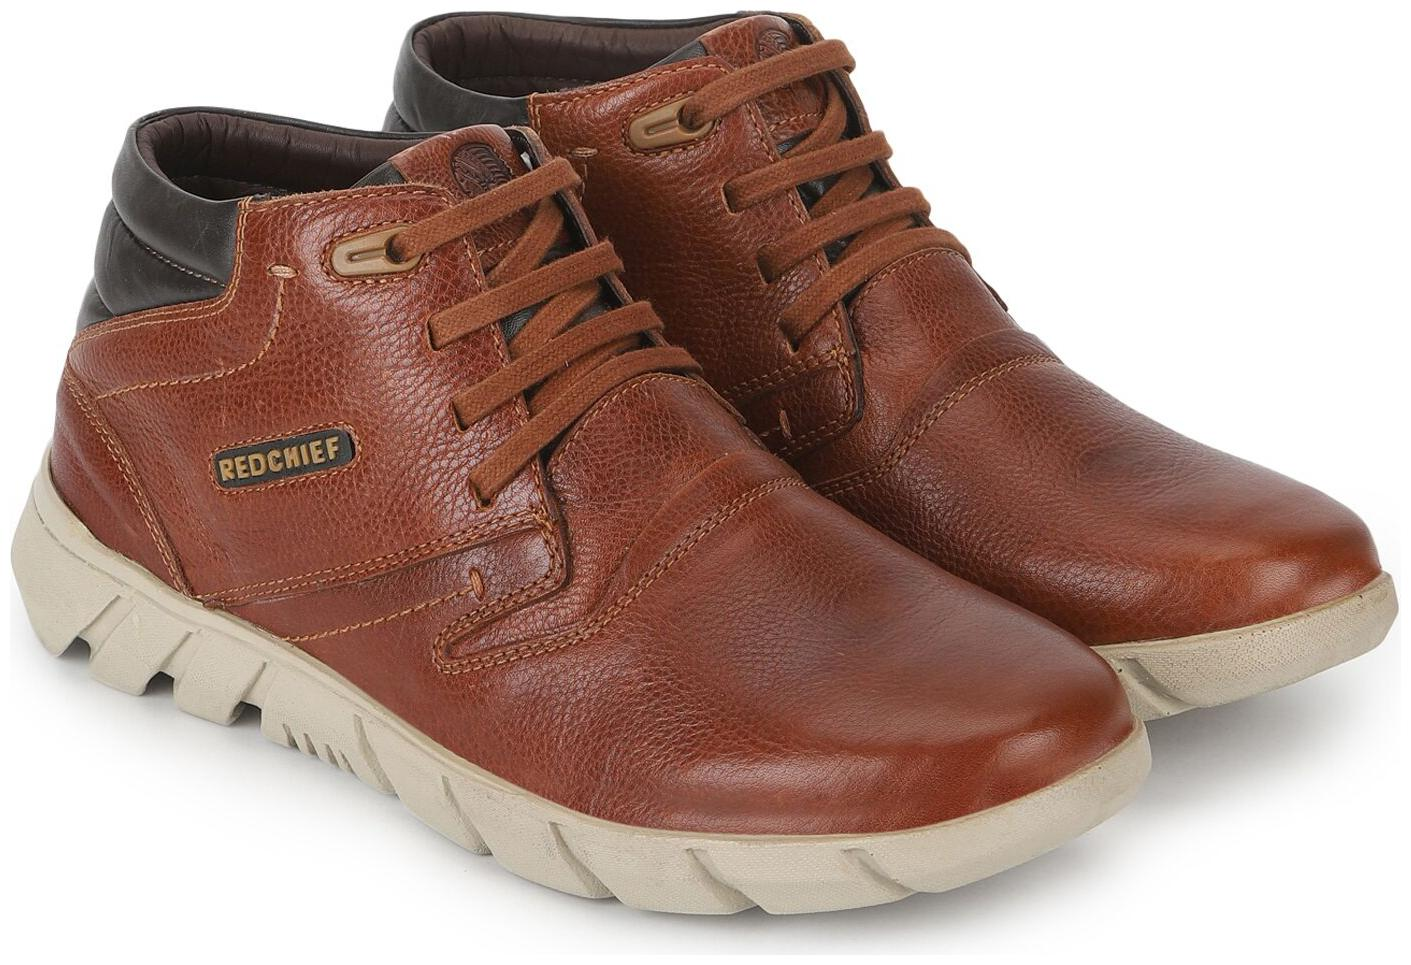 Red-chief Casual Shoes - Buy Red-chief